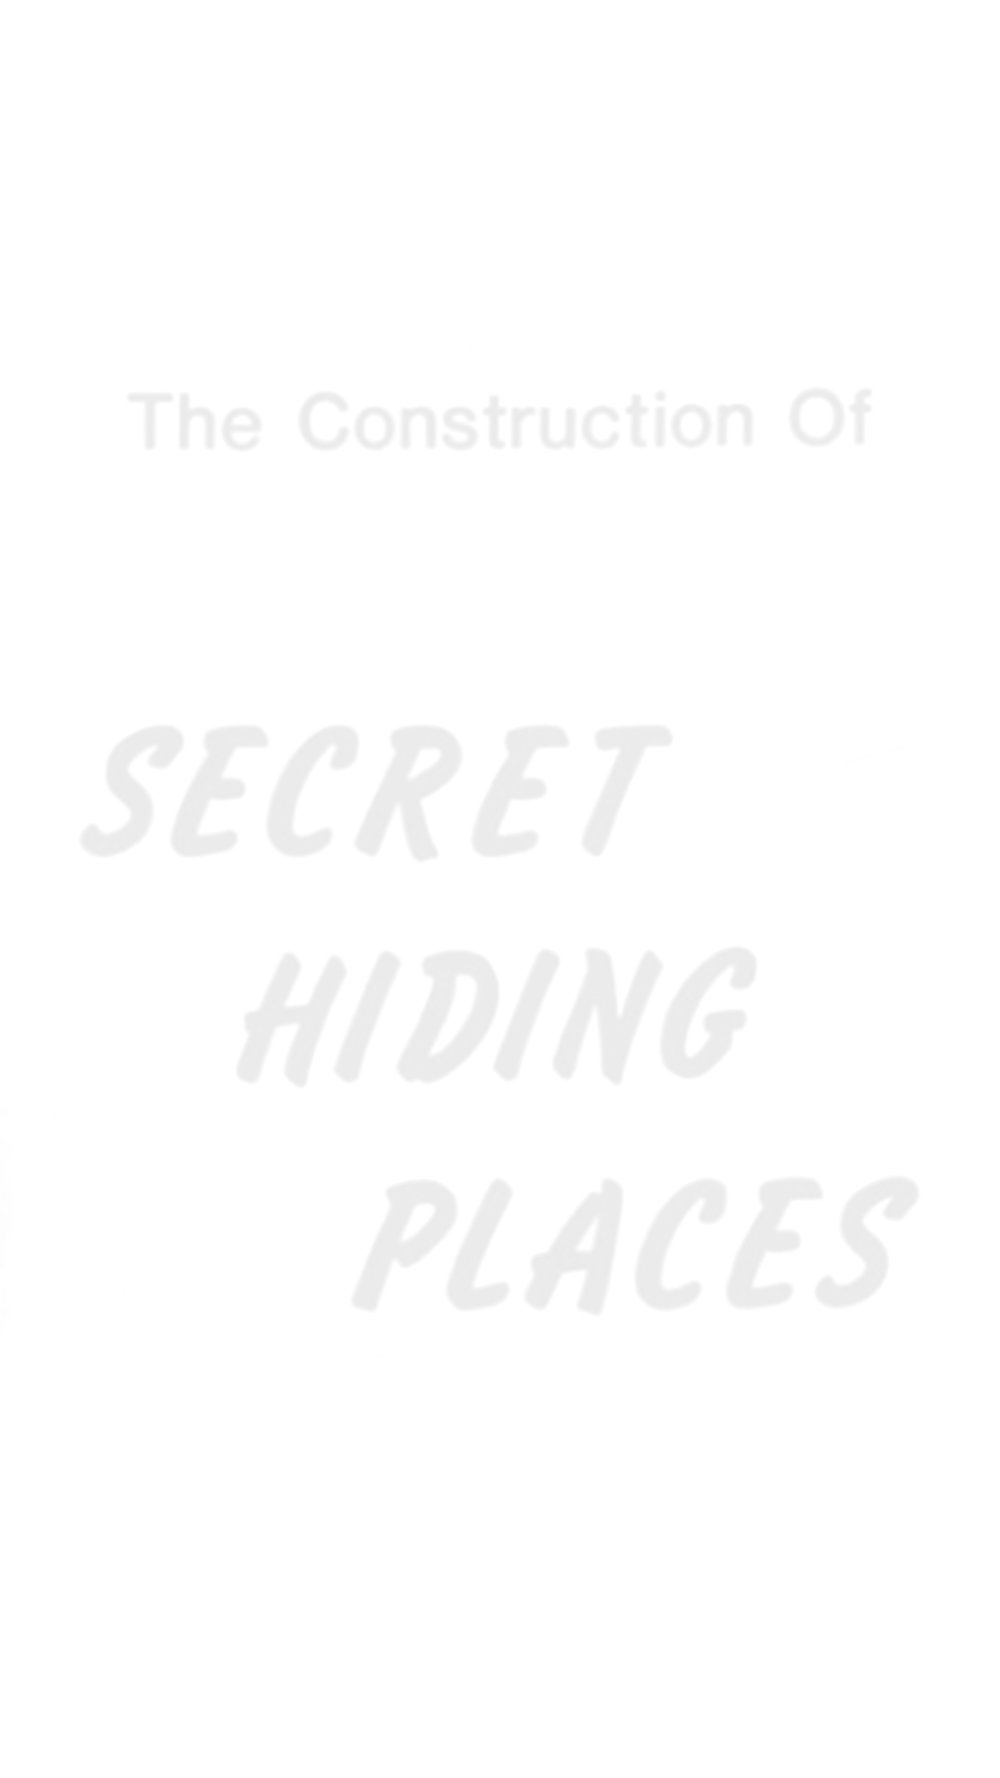 secrethidingplaces.jpg